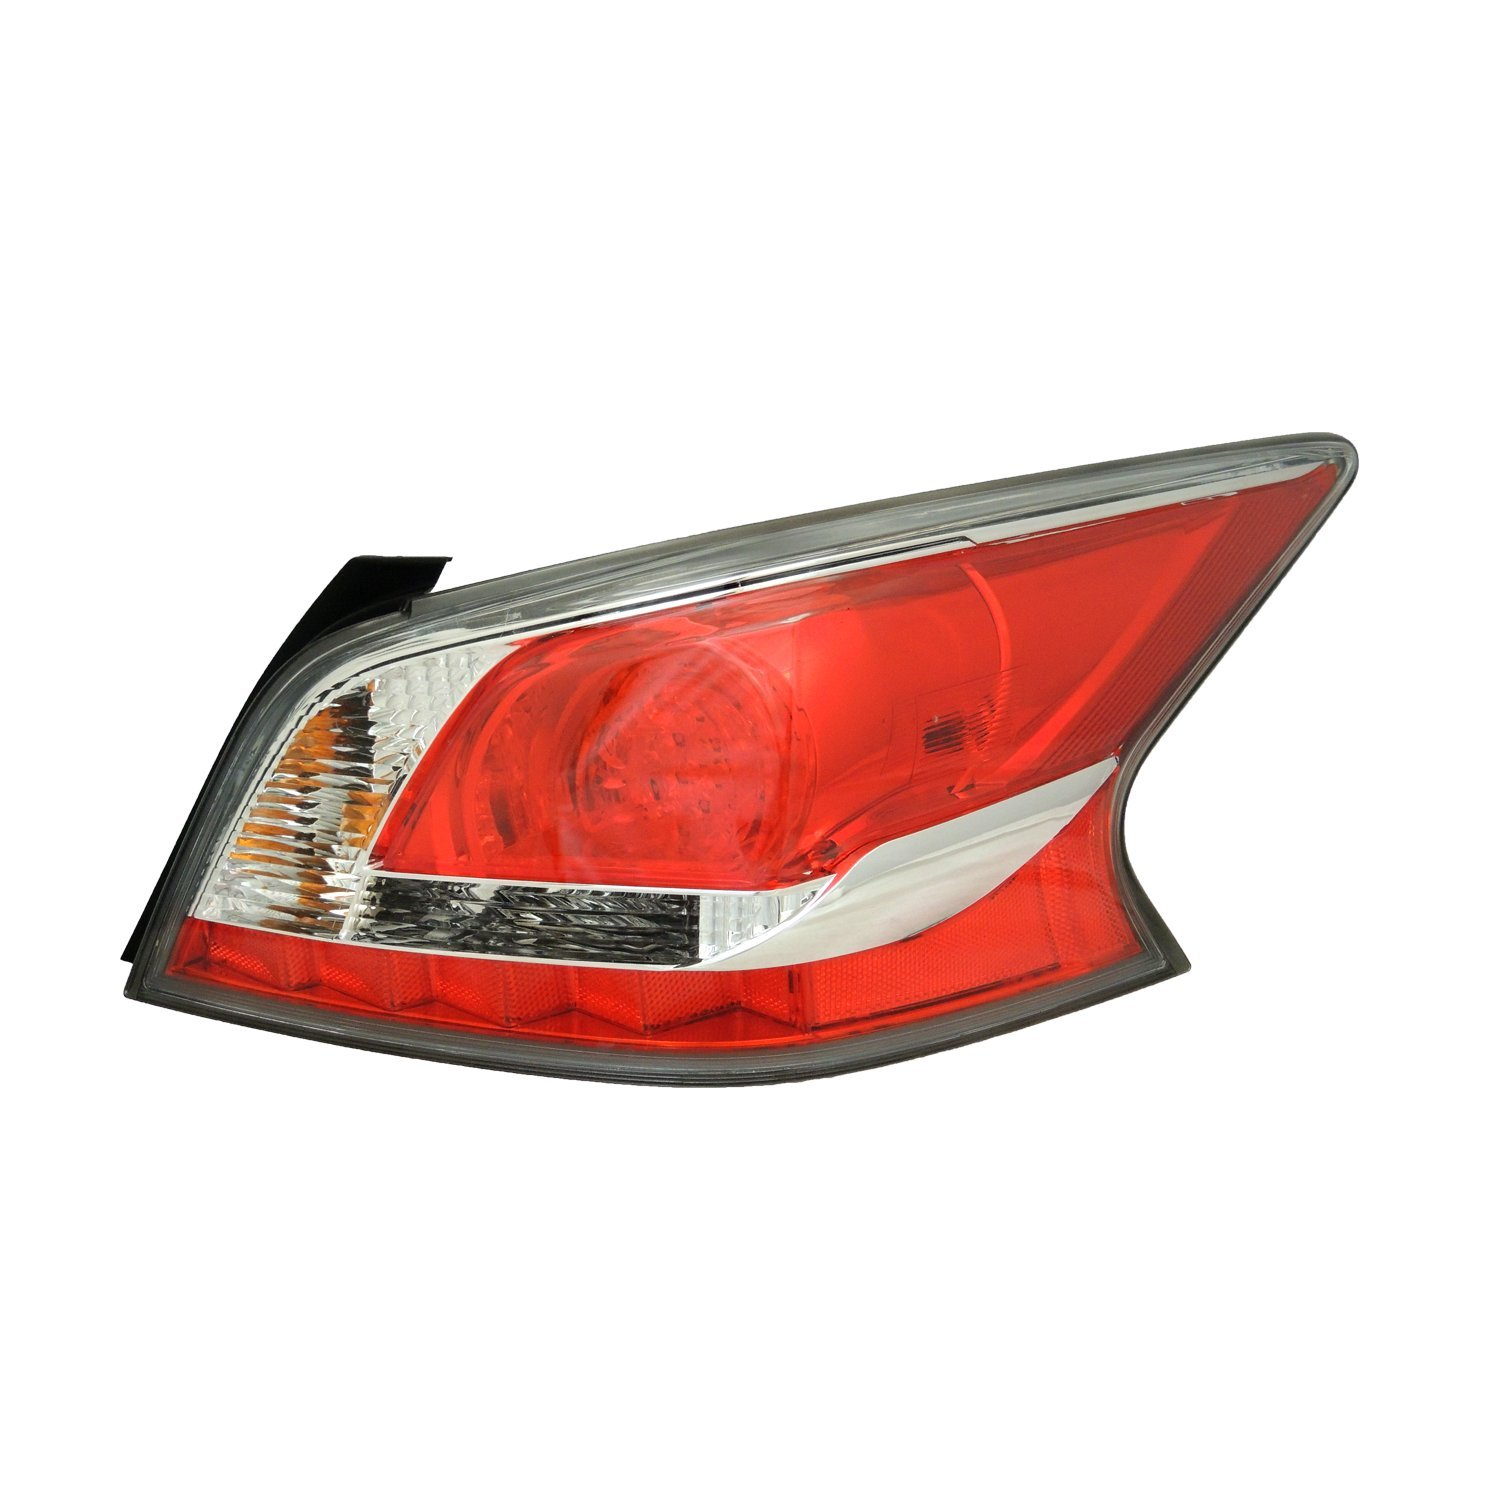 TYC 11-6483-90 Nissan Altima Right Replacement Tail Lamp